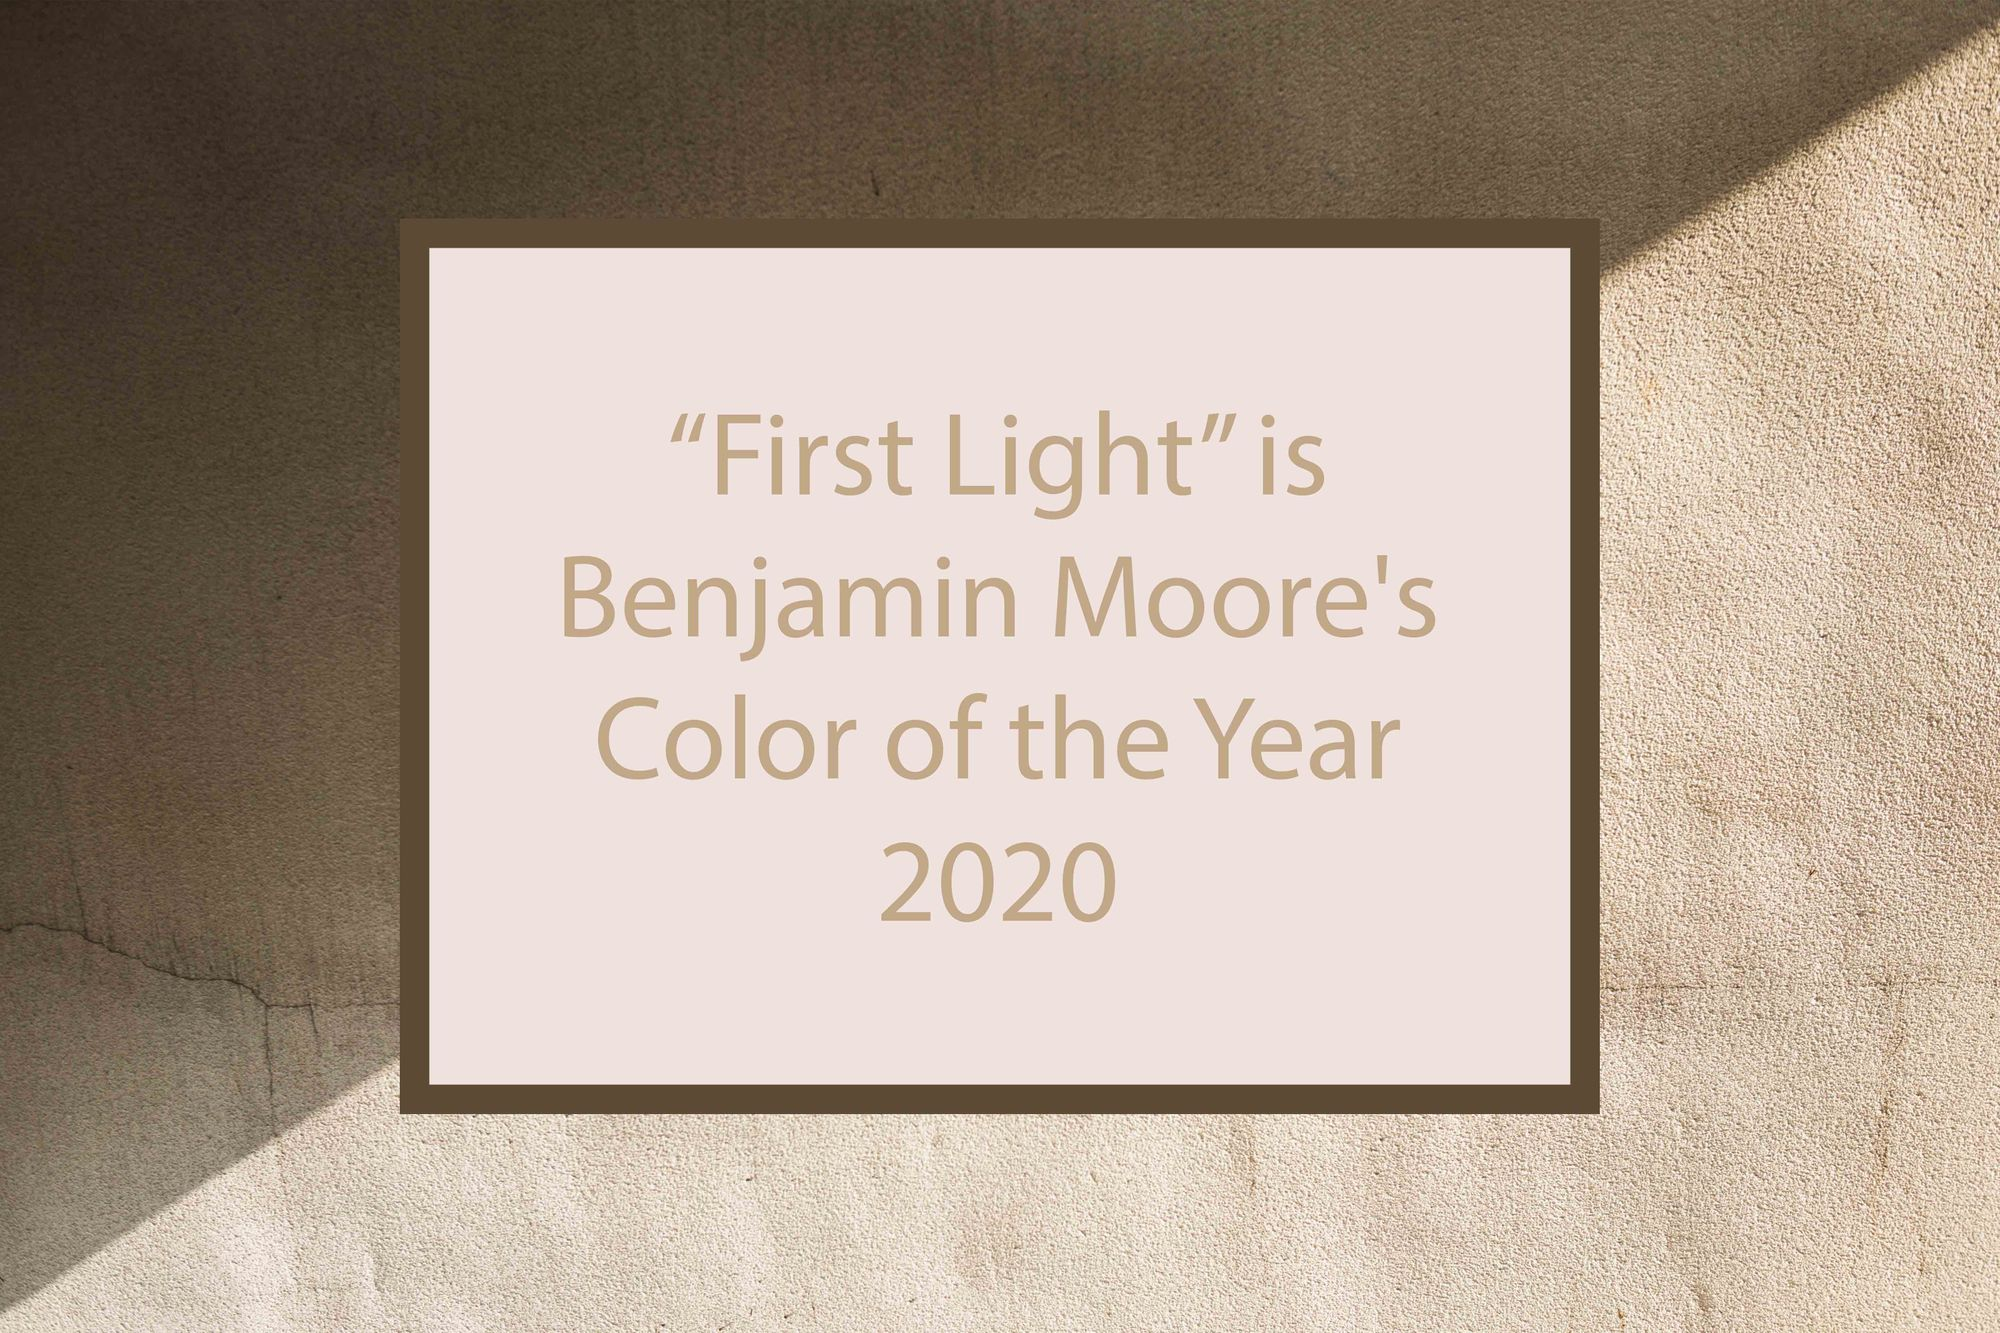 Benjamin Moore's Color of the Year 2020